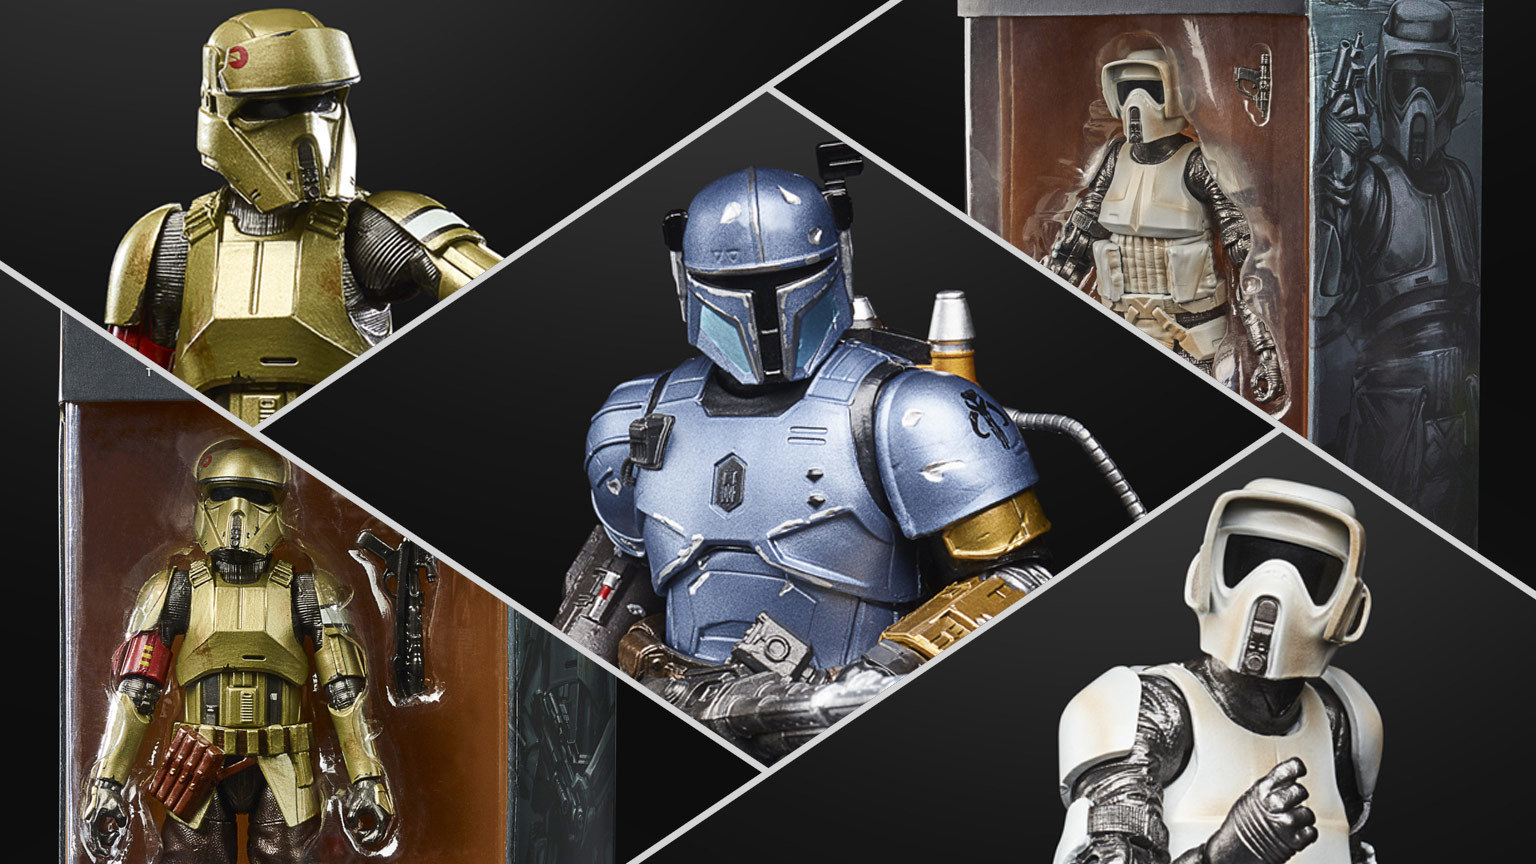 Hasbro Reveals New Carbonized Black Series Figures Inspired By The Mandalorian